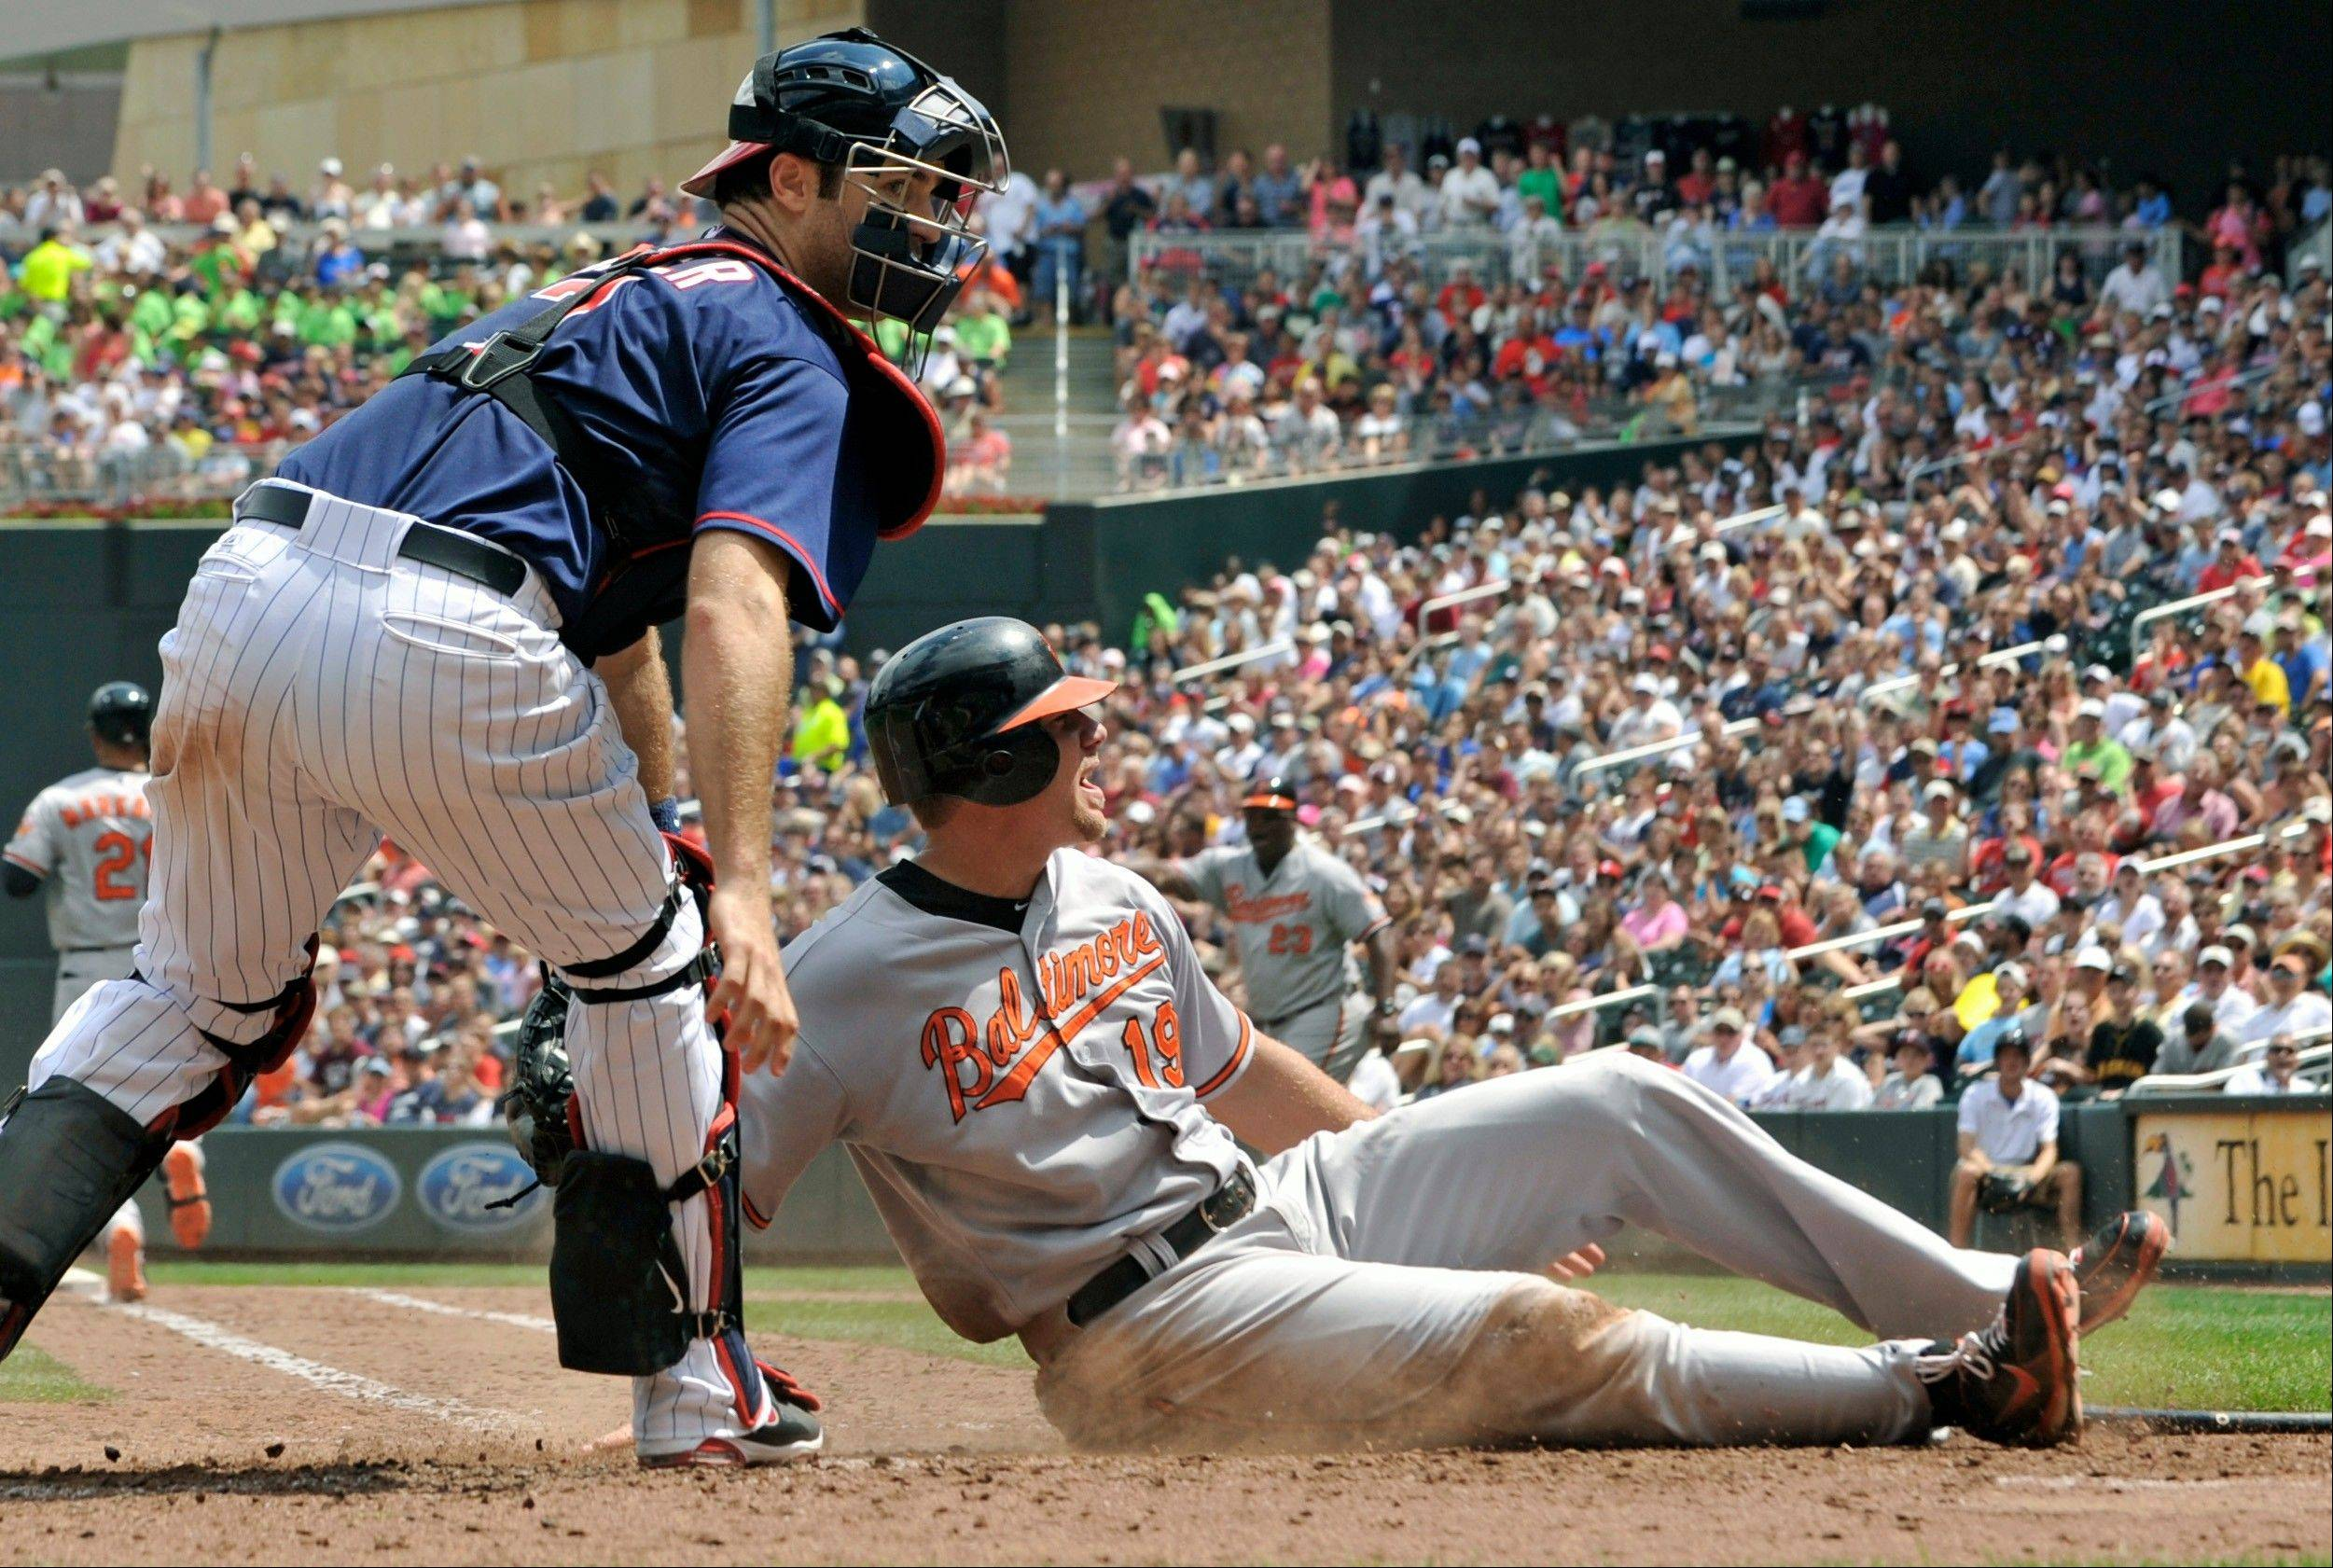 The Baltimore Orioles� Chris Davis looks for the call as he slides in to score on Minnesota Twins catcher Joe Mauer, left, after third baseman Trevor Plouffe�s throwing error Thursday during the seventh inning in Minneapolis.